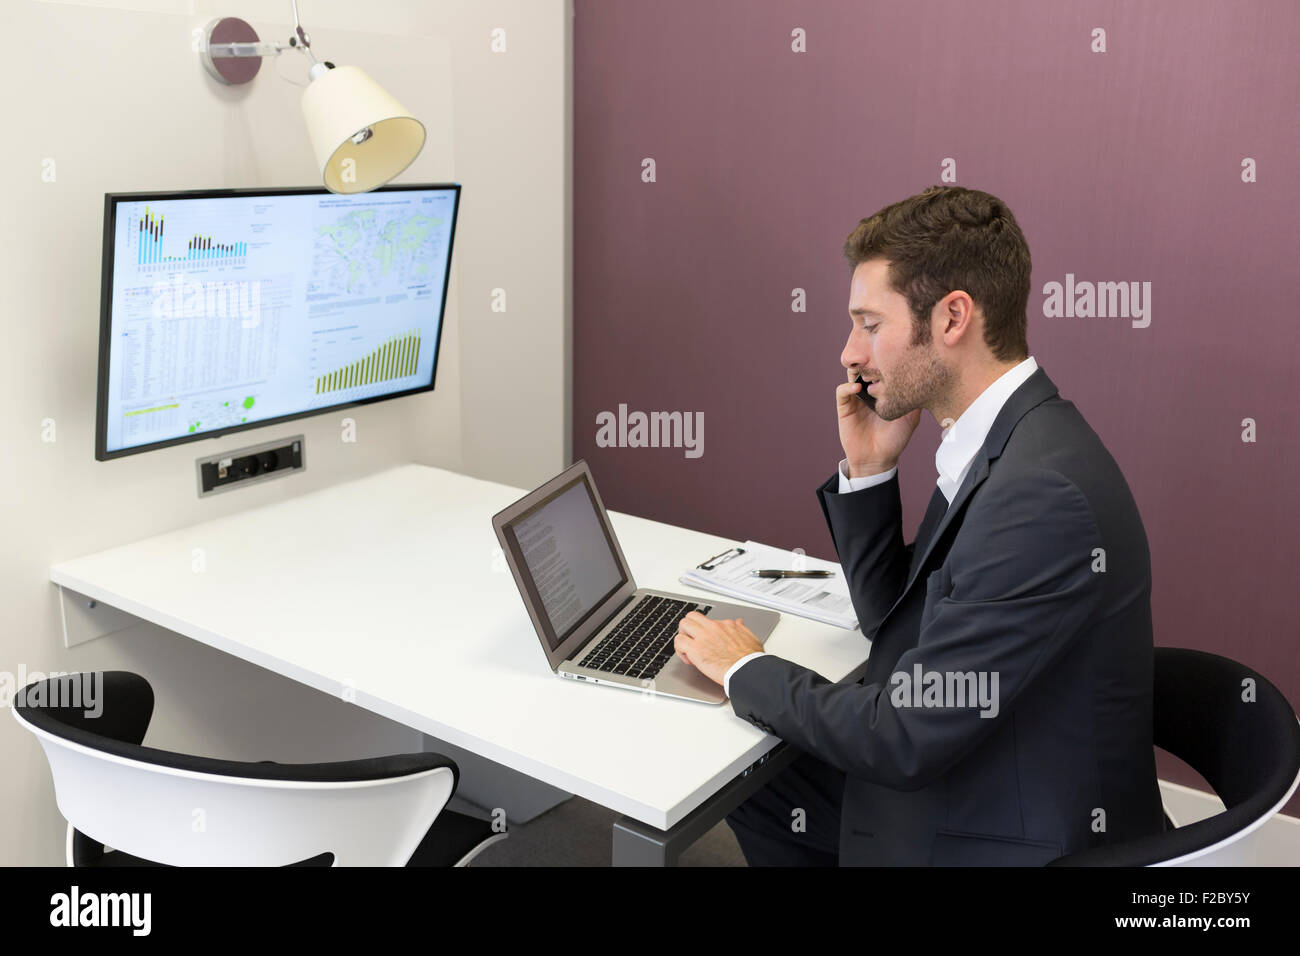 Businessman using cell phone in conference room Banque D'Images